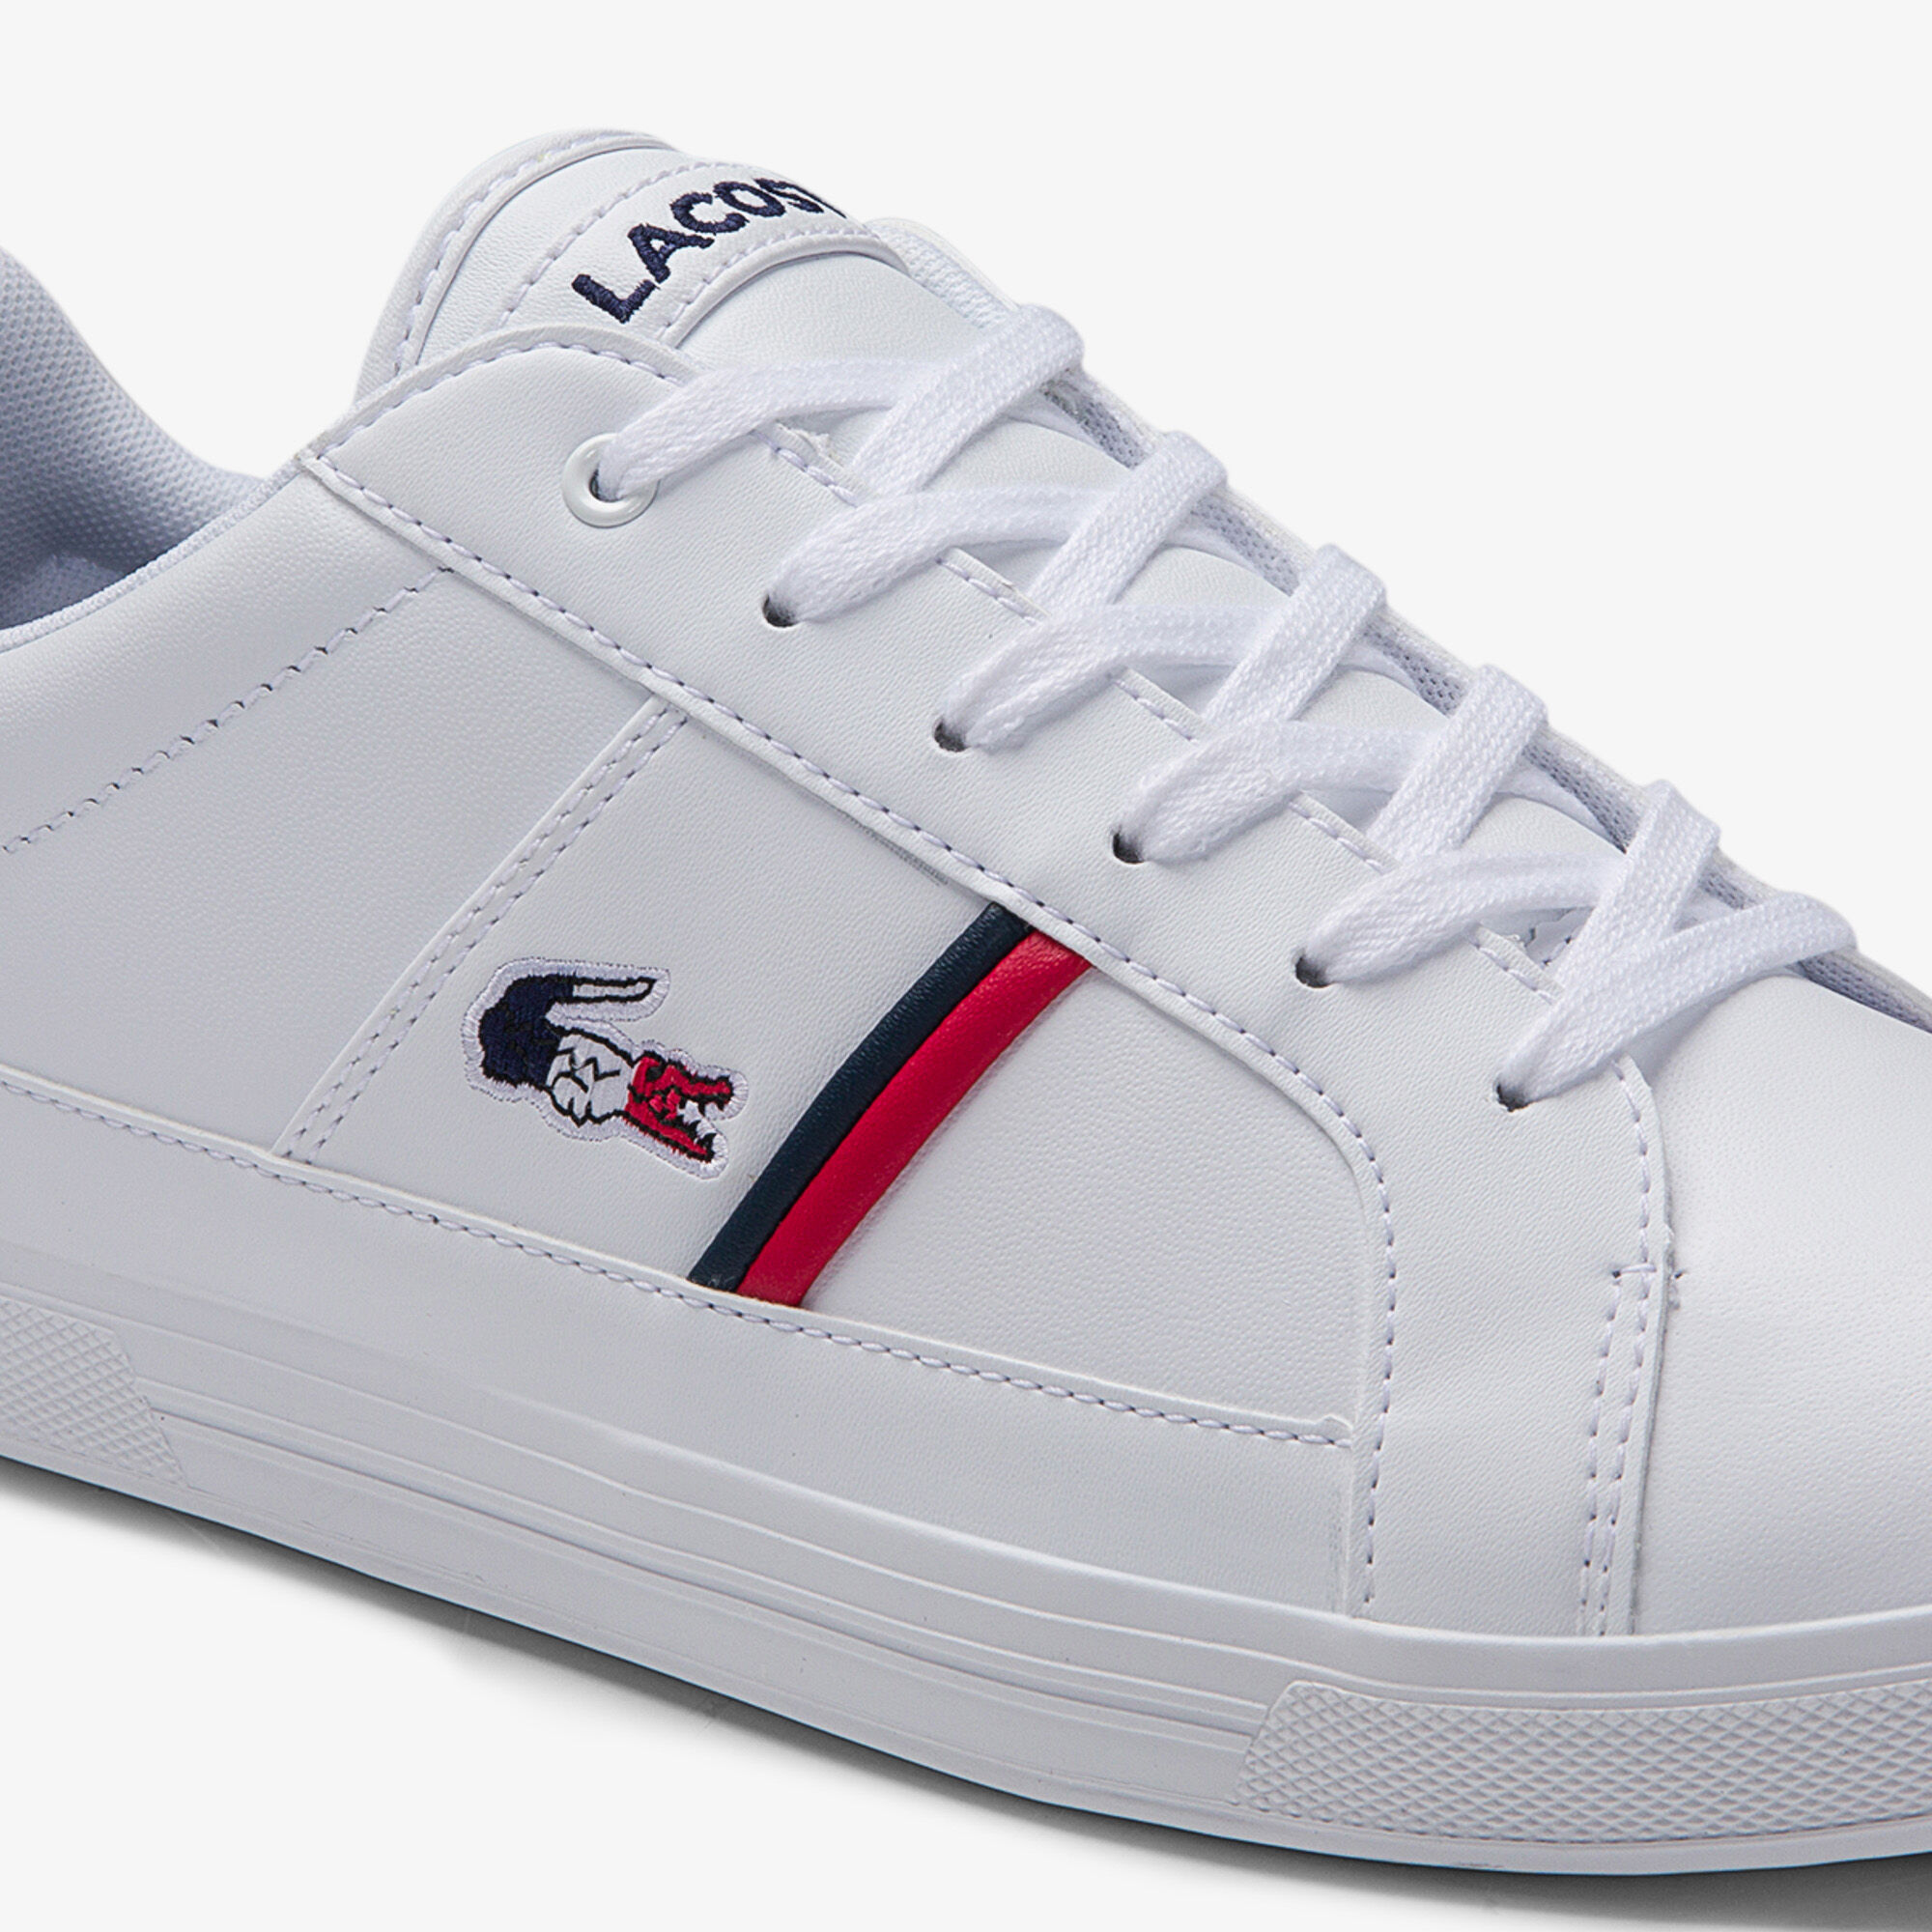 Men's Europa Tricolore Leather and Synthetic Sneakers